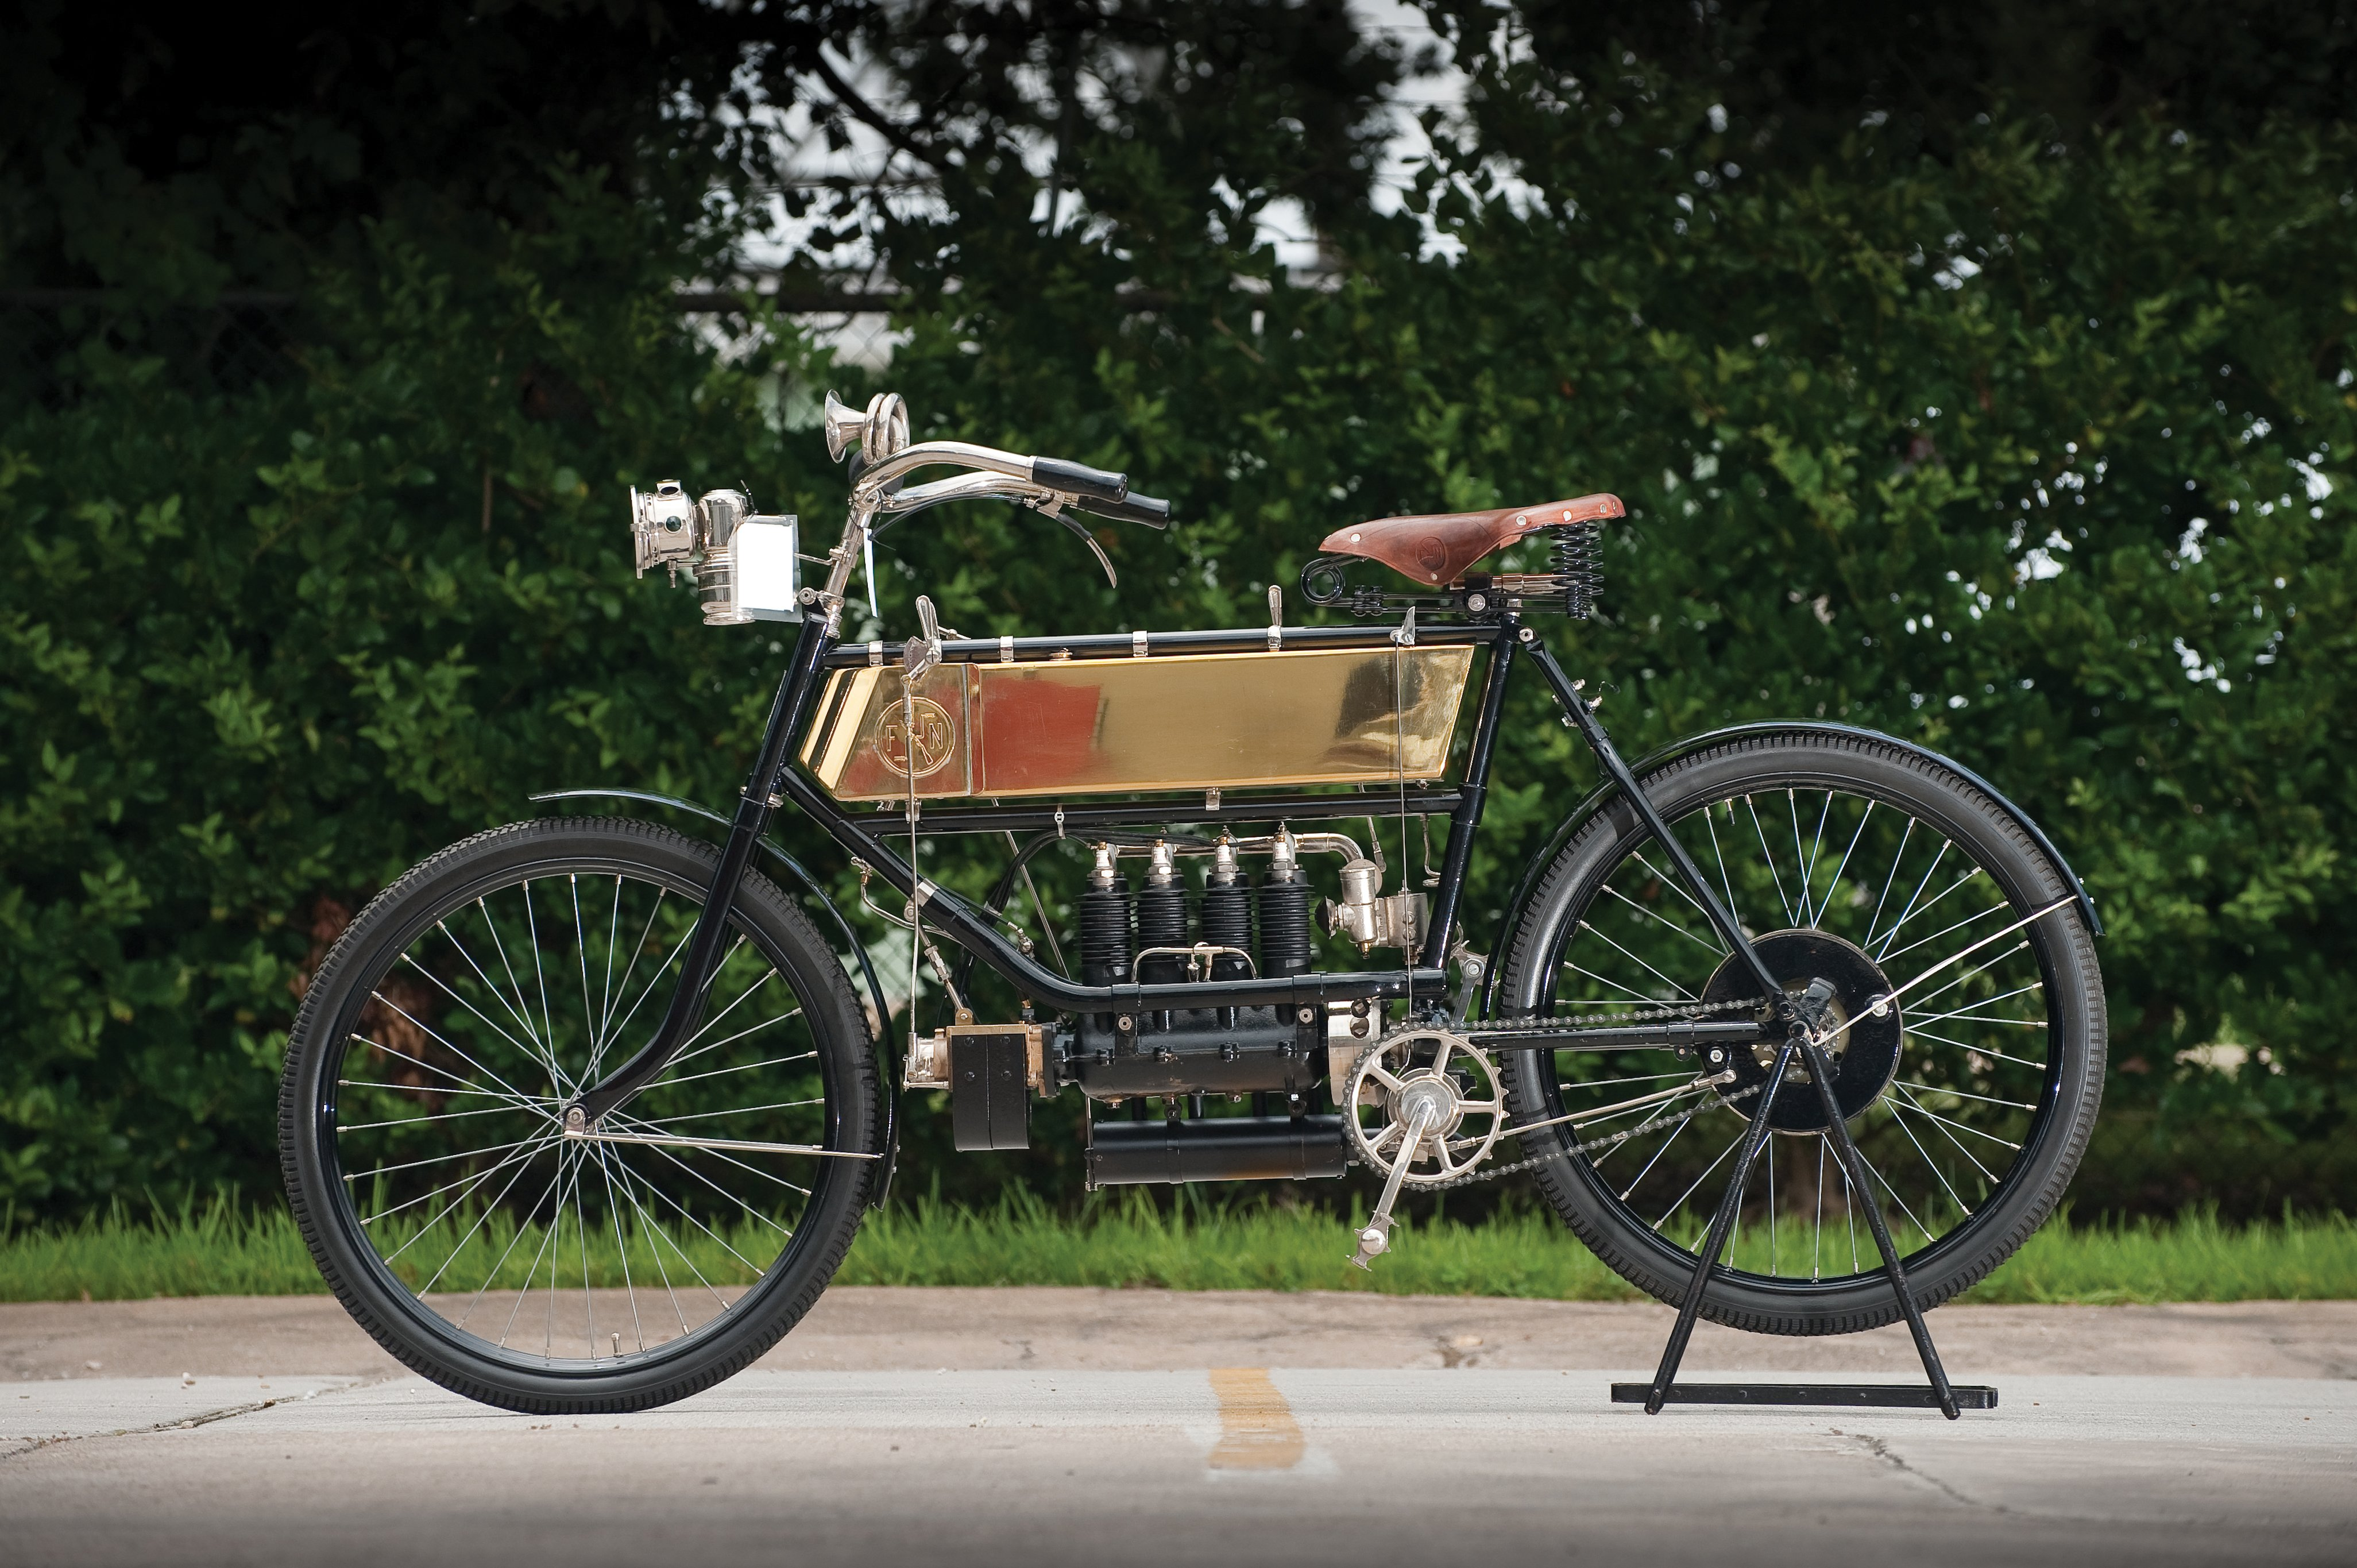 1905 FN Four: World's First Production Inline-4 Motorcycle